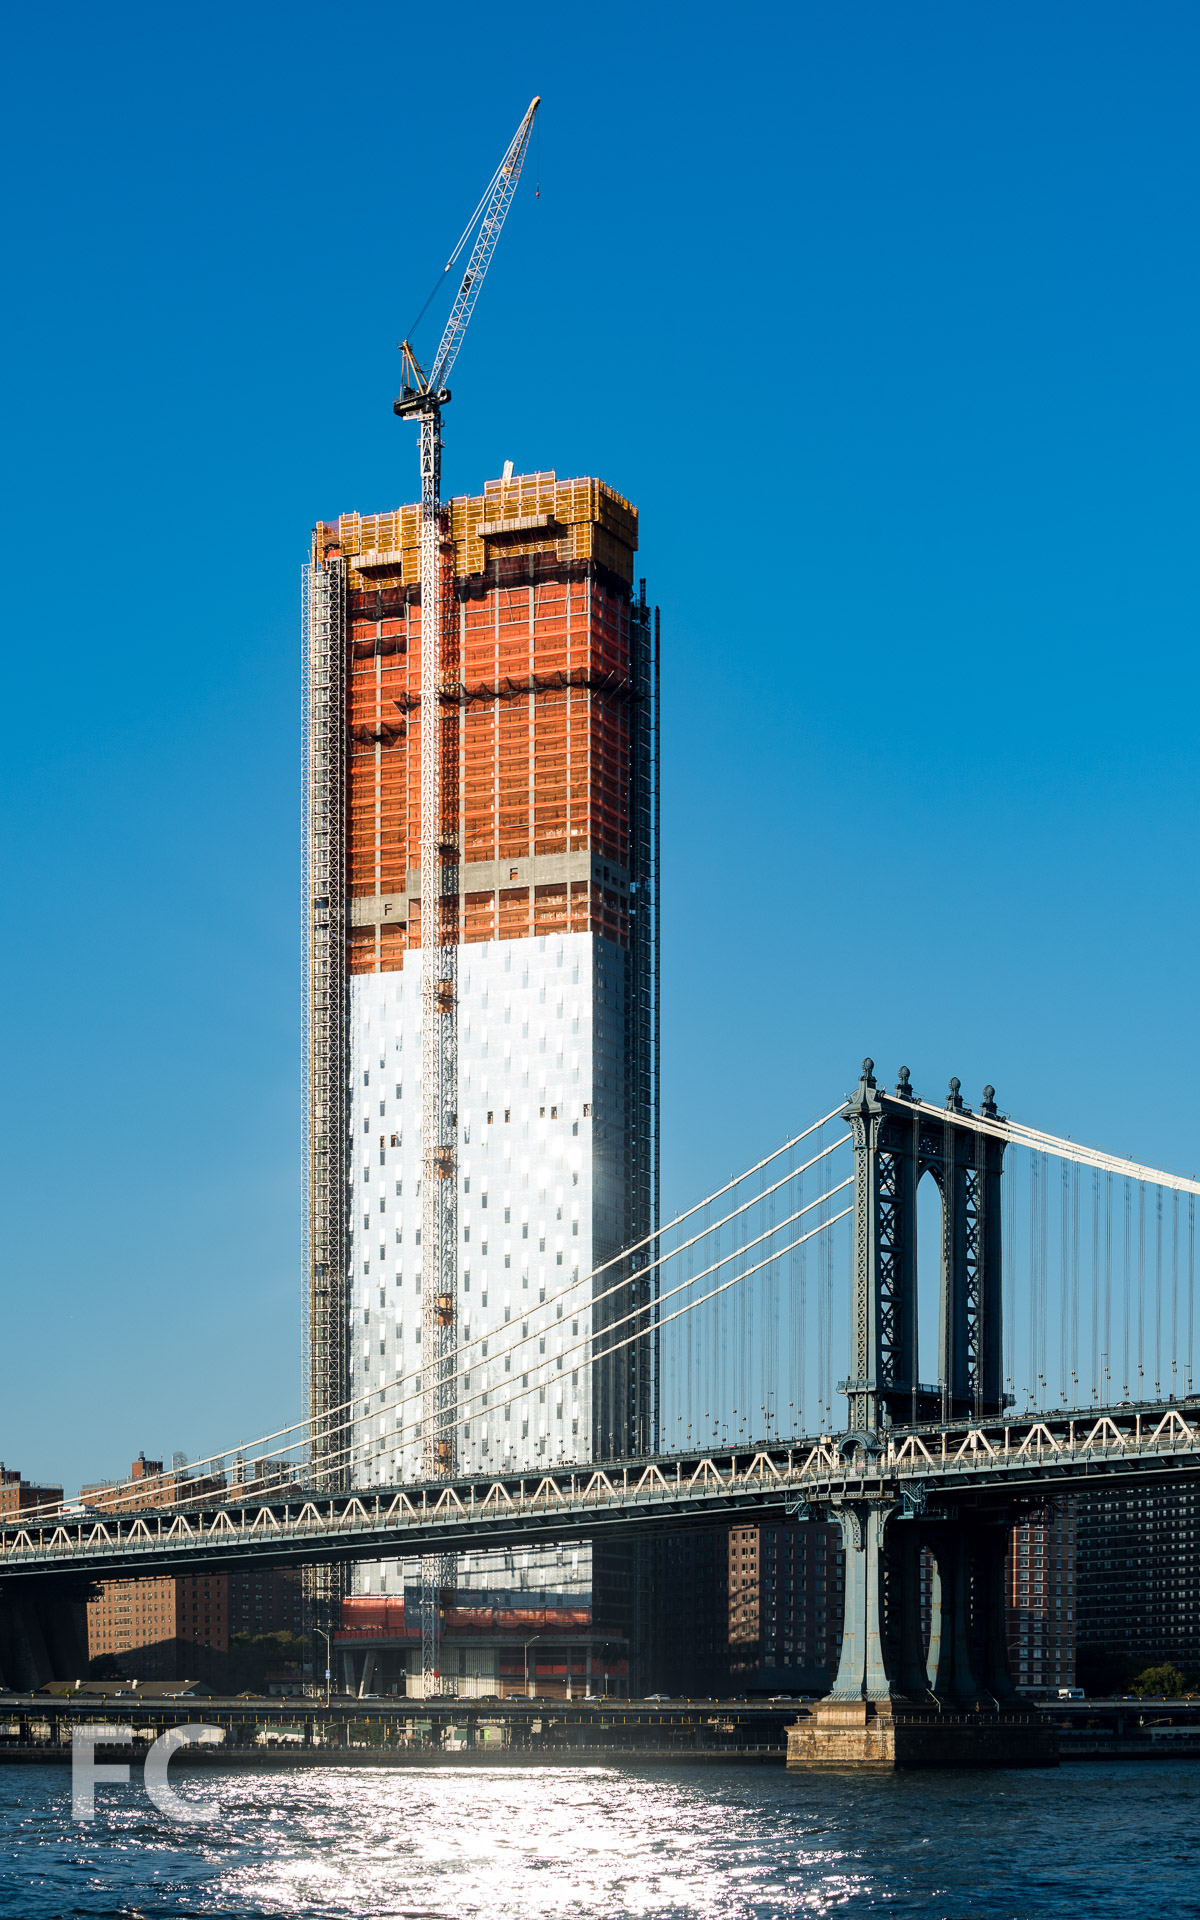 Southwest corner of the tower (left) and the Manhattan Bridge (right) from the East River.